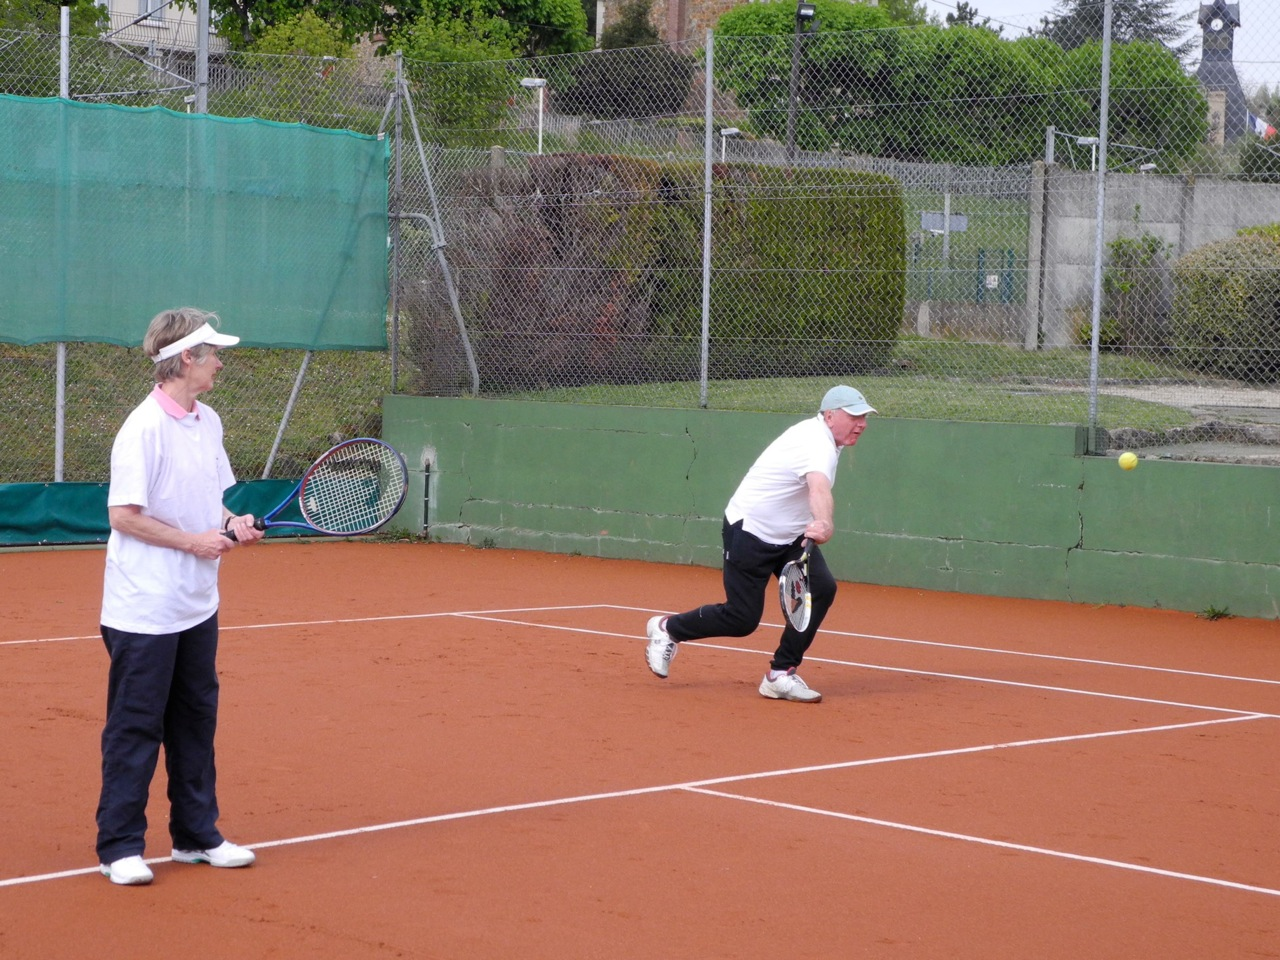 Pat Duke in action (or should that be 'inaction'?) on her way to winning the tennis tournament